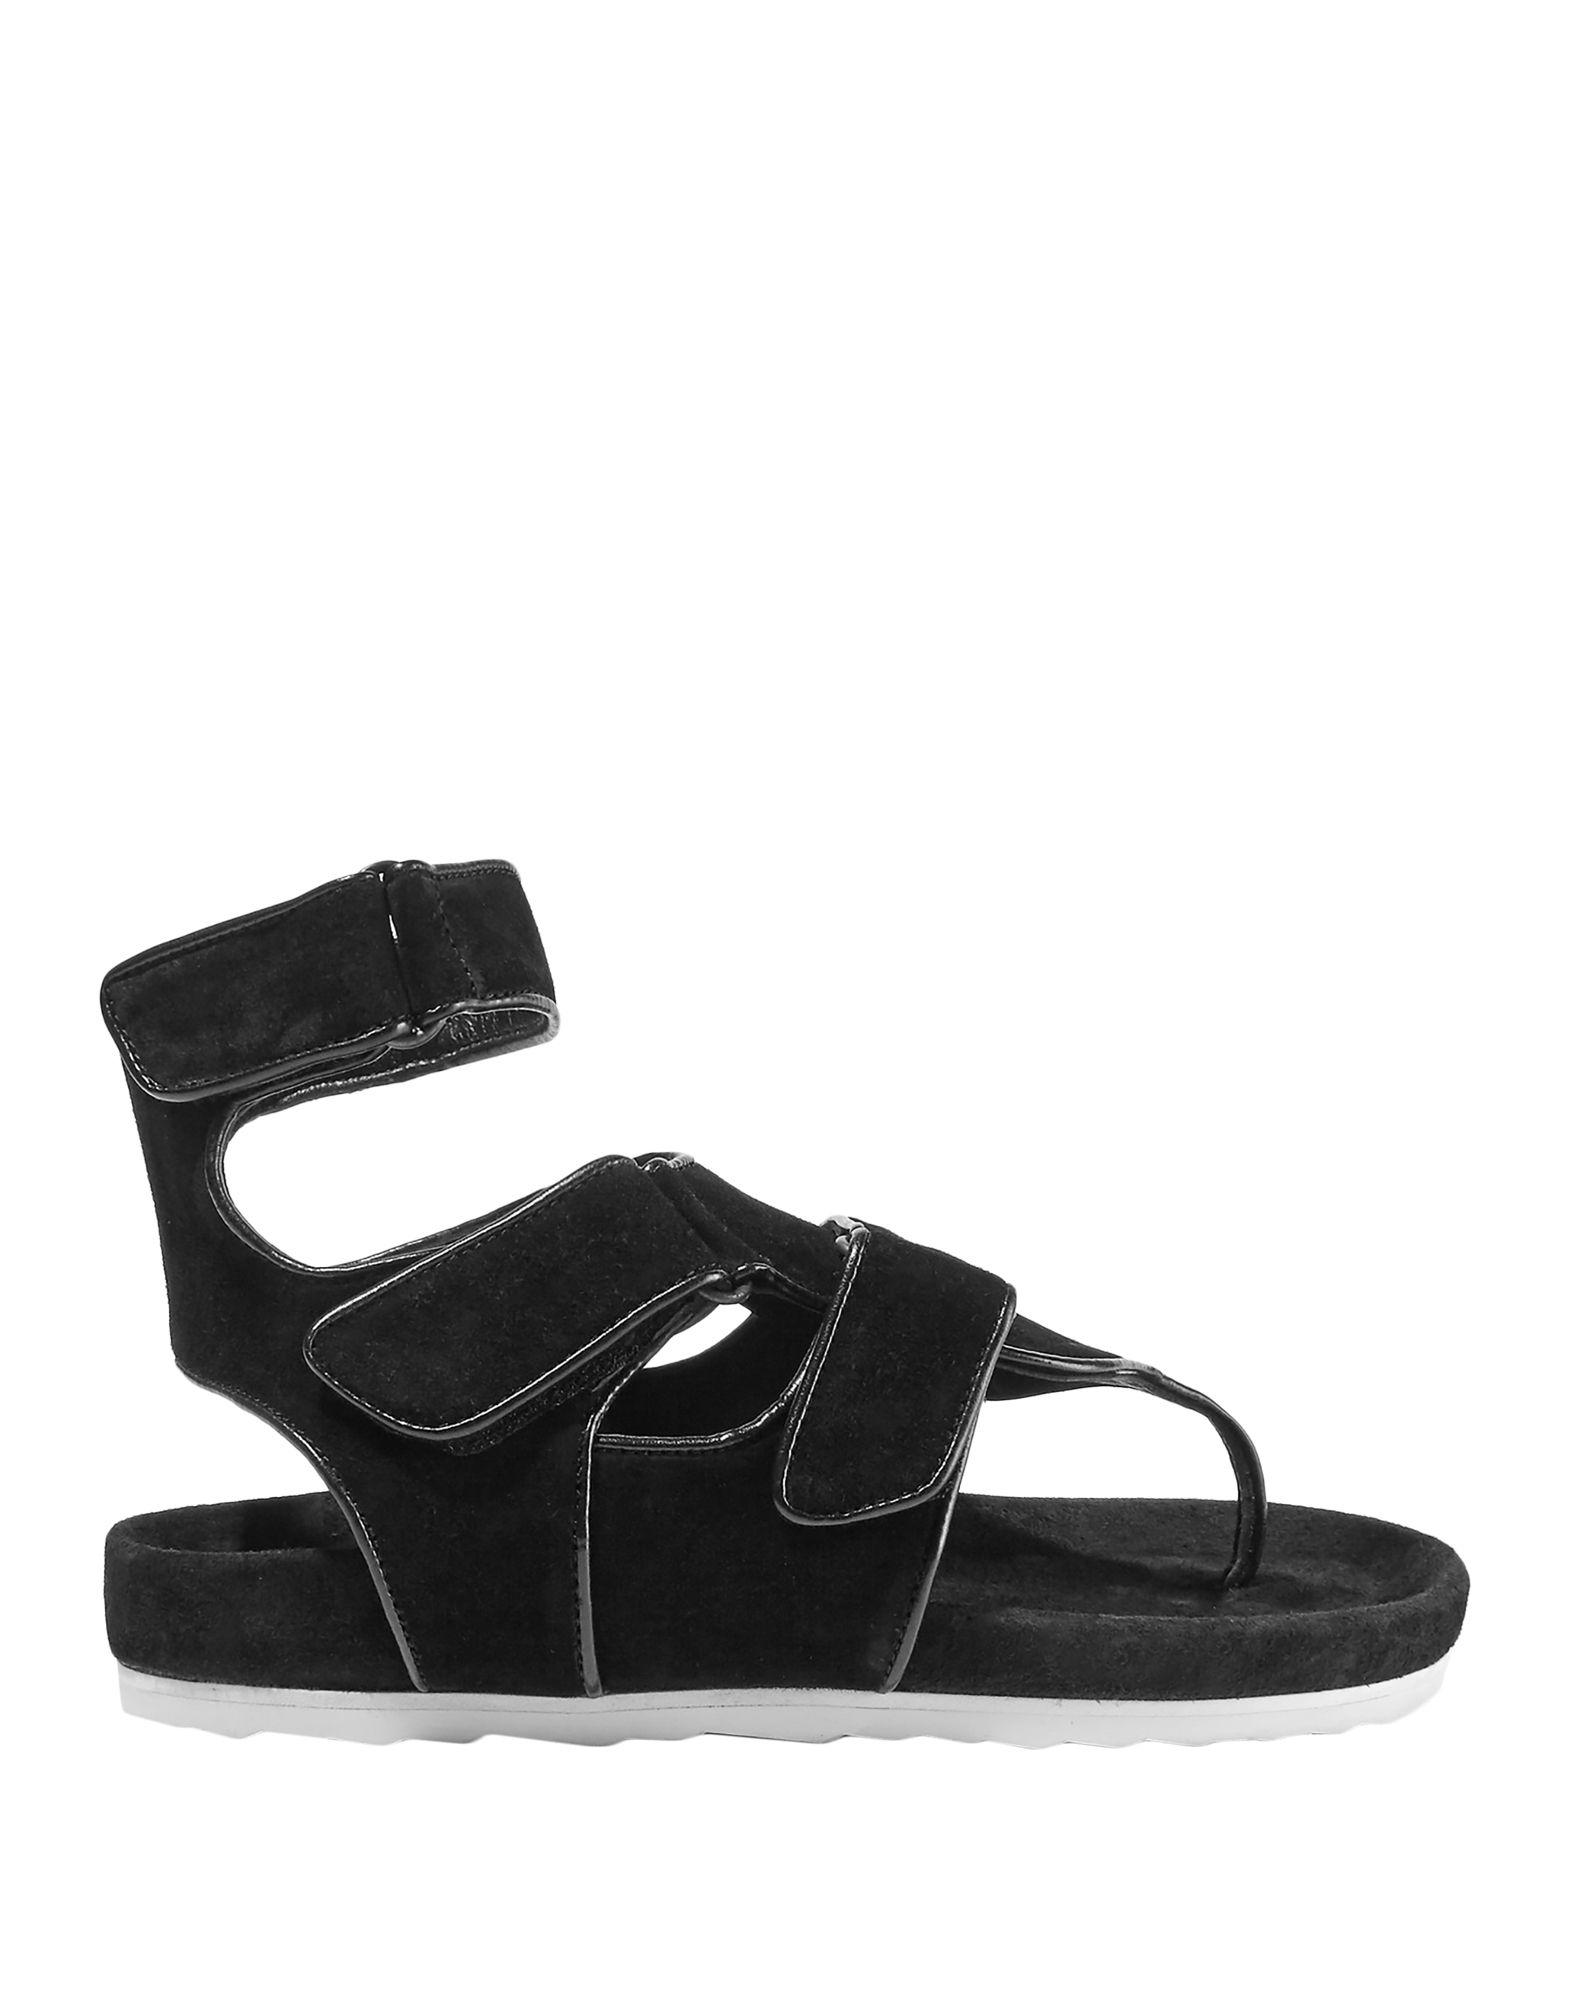 08424d9235237a Lyst - Pierre Hardy Toe Post Sandal in Black